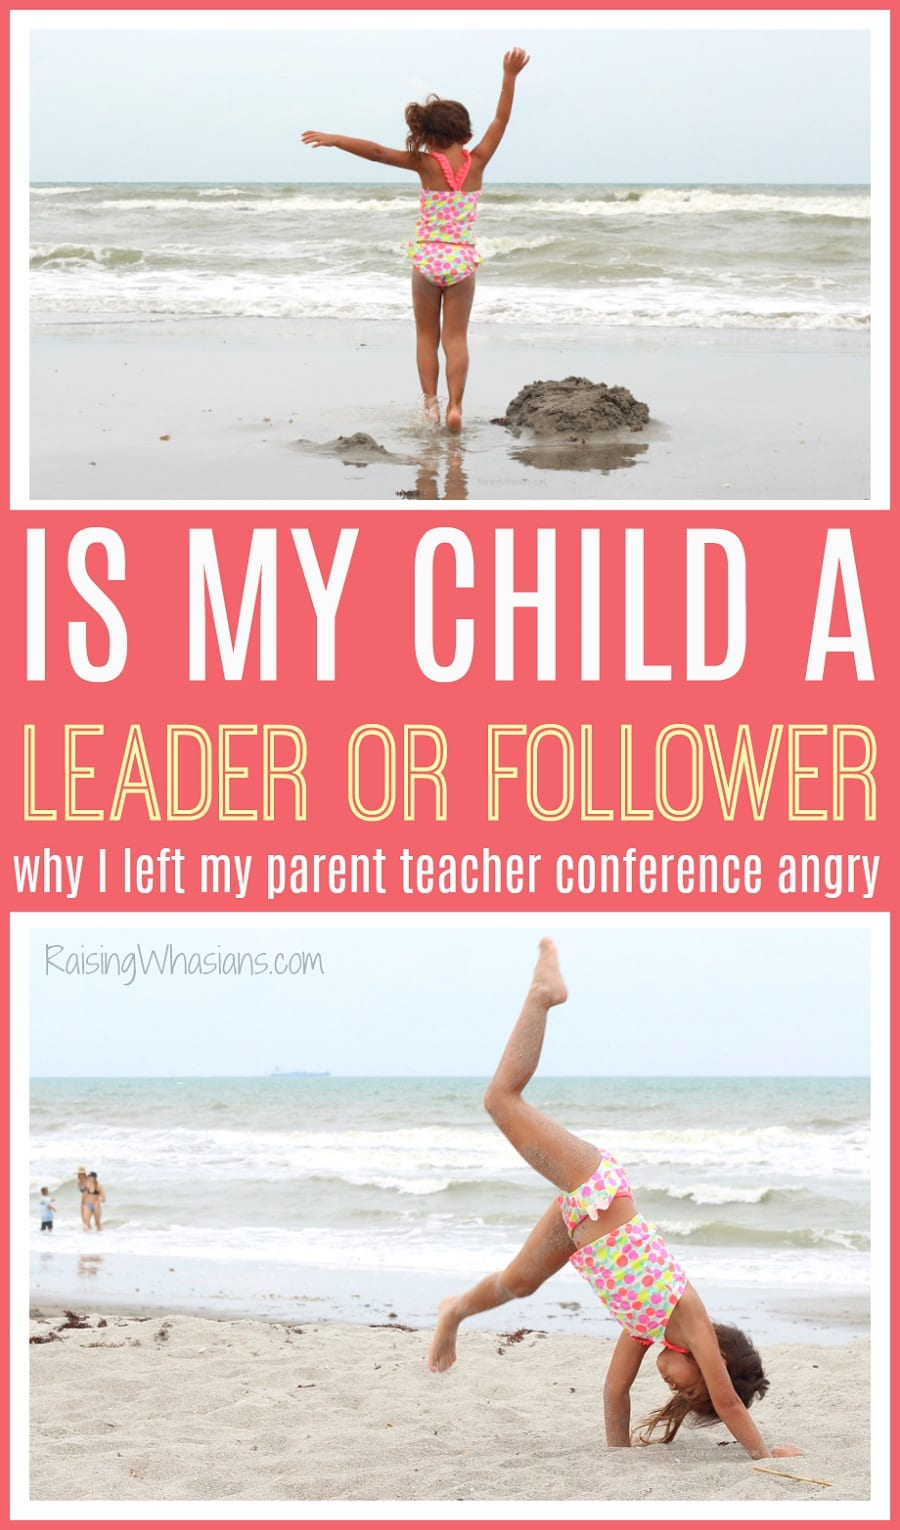 Raising kids leaders followers